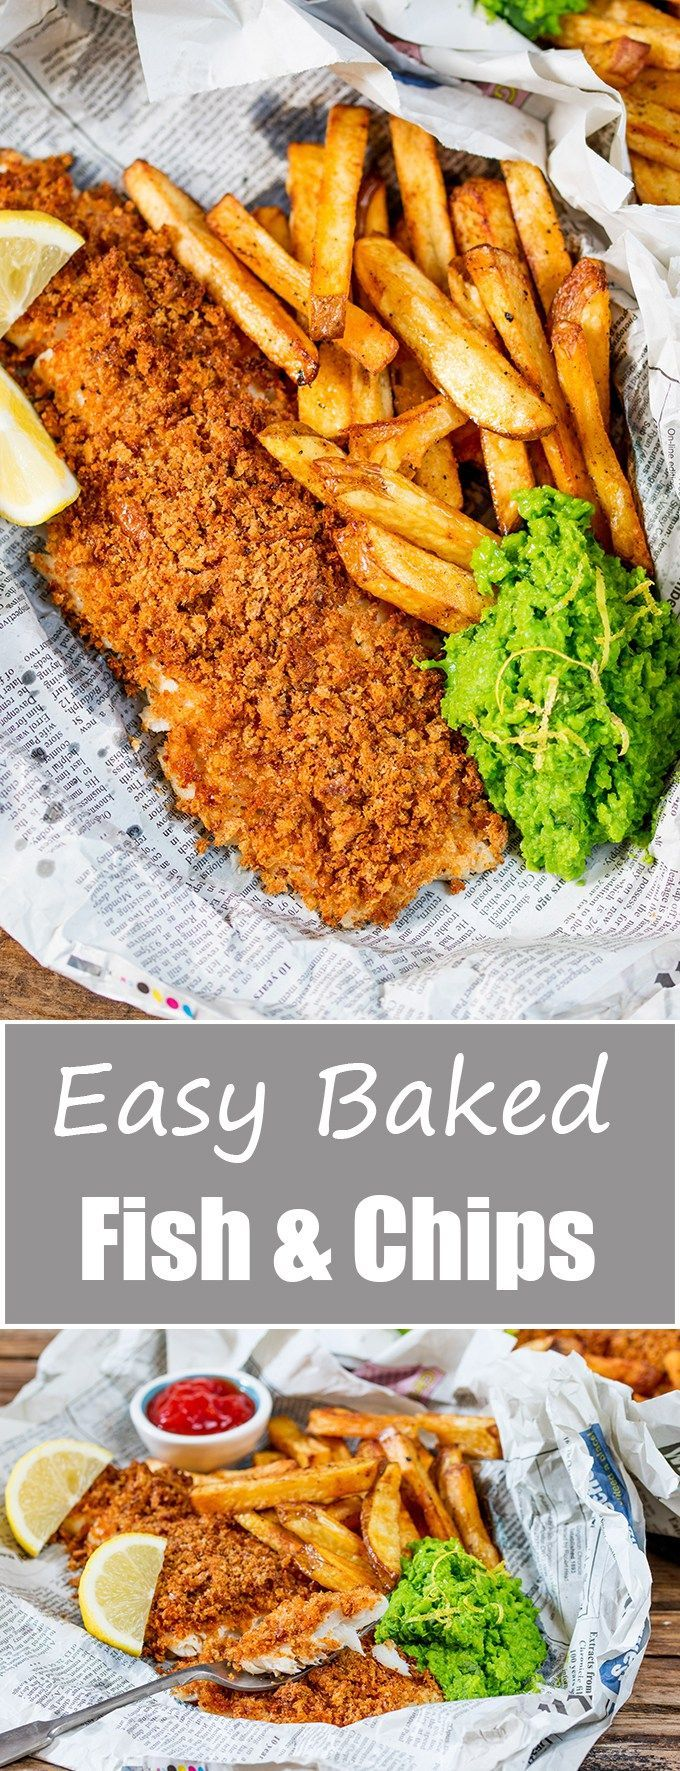 These fish and chips may be baked instead of fried, but they've still got all the flavour and crunch of the fried version! Easily made gluten free too!